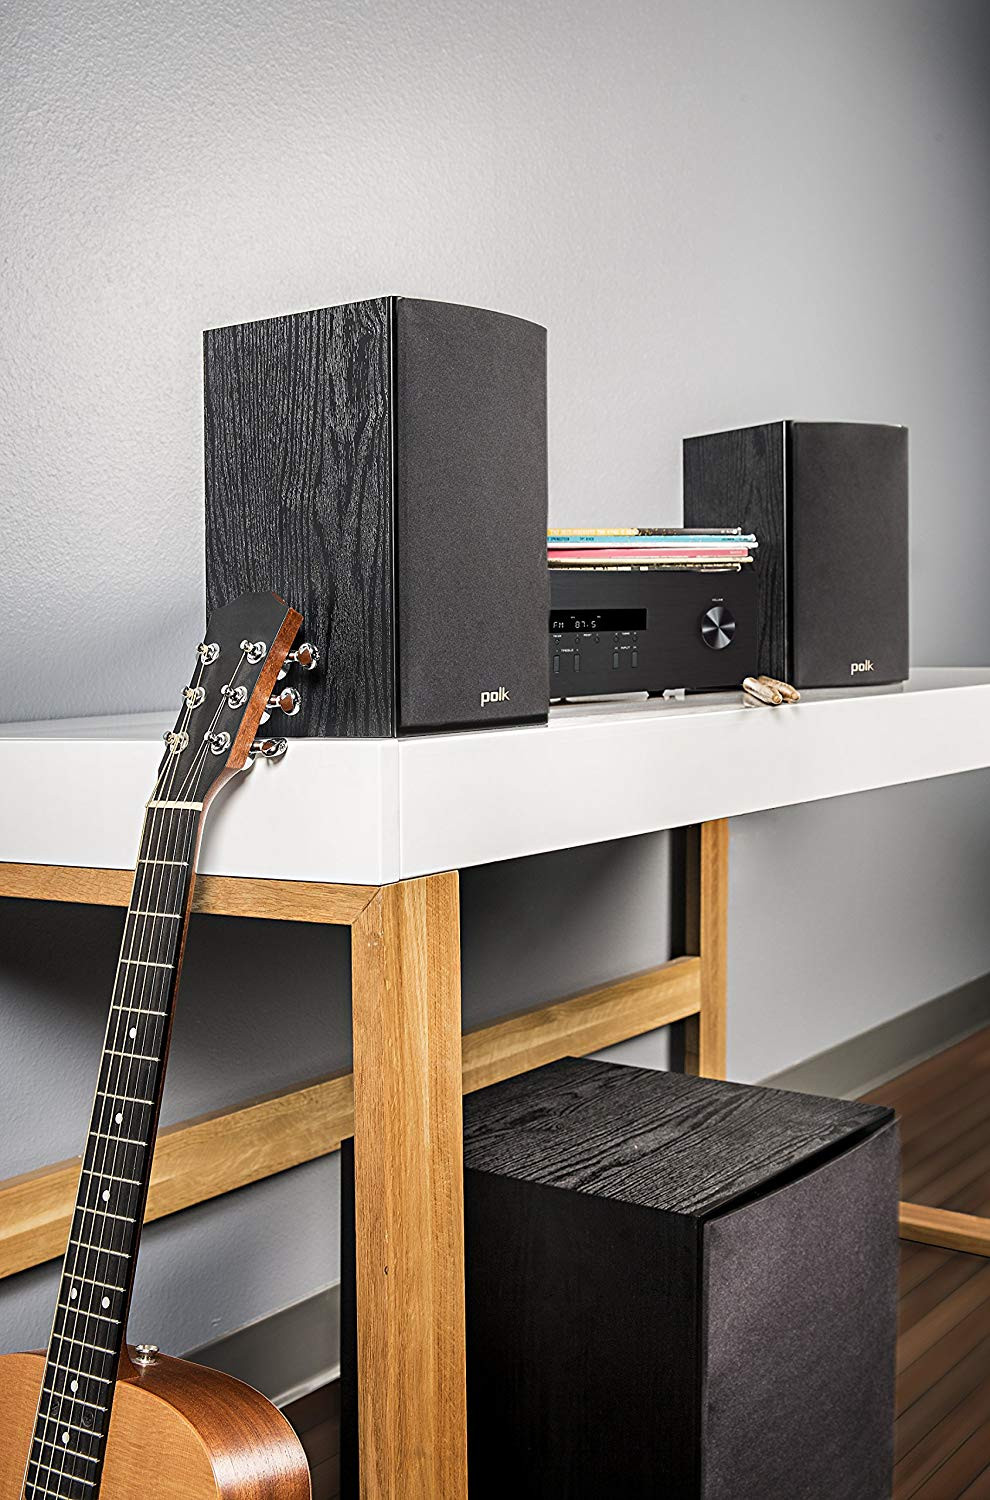 polk_audio_bookshelf_welldonestuff